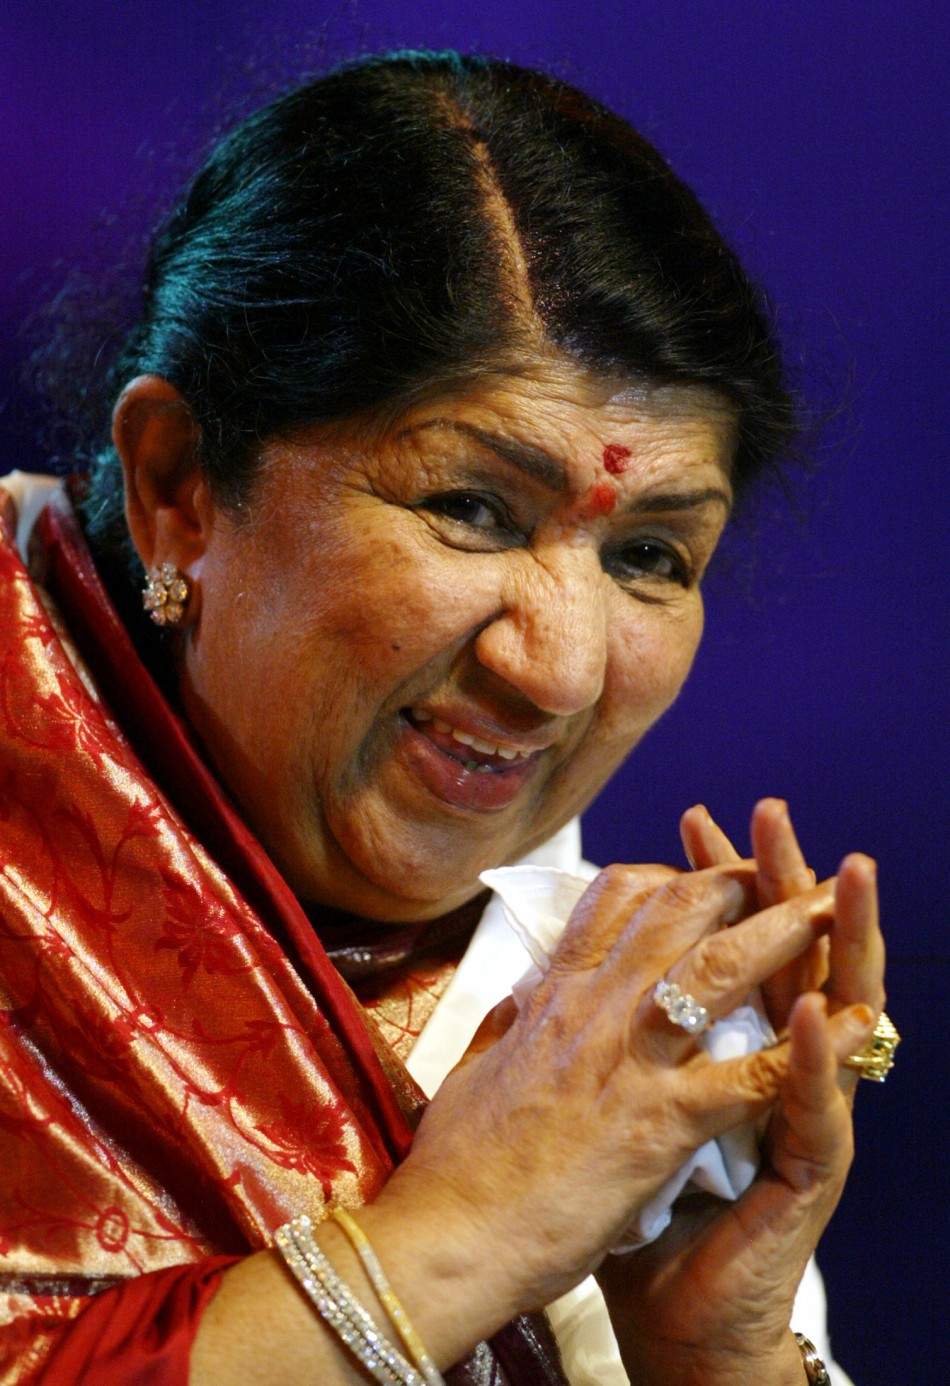 lata mangeshkar Lata mangeshkar tour dates 2018, 2019 lata mangeshkar concert tickets are on sale you can find the list of lata mangeshkar tour dates here lata mangeshkar is an.